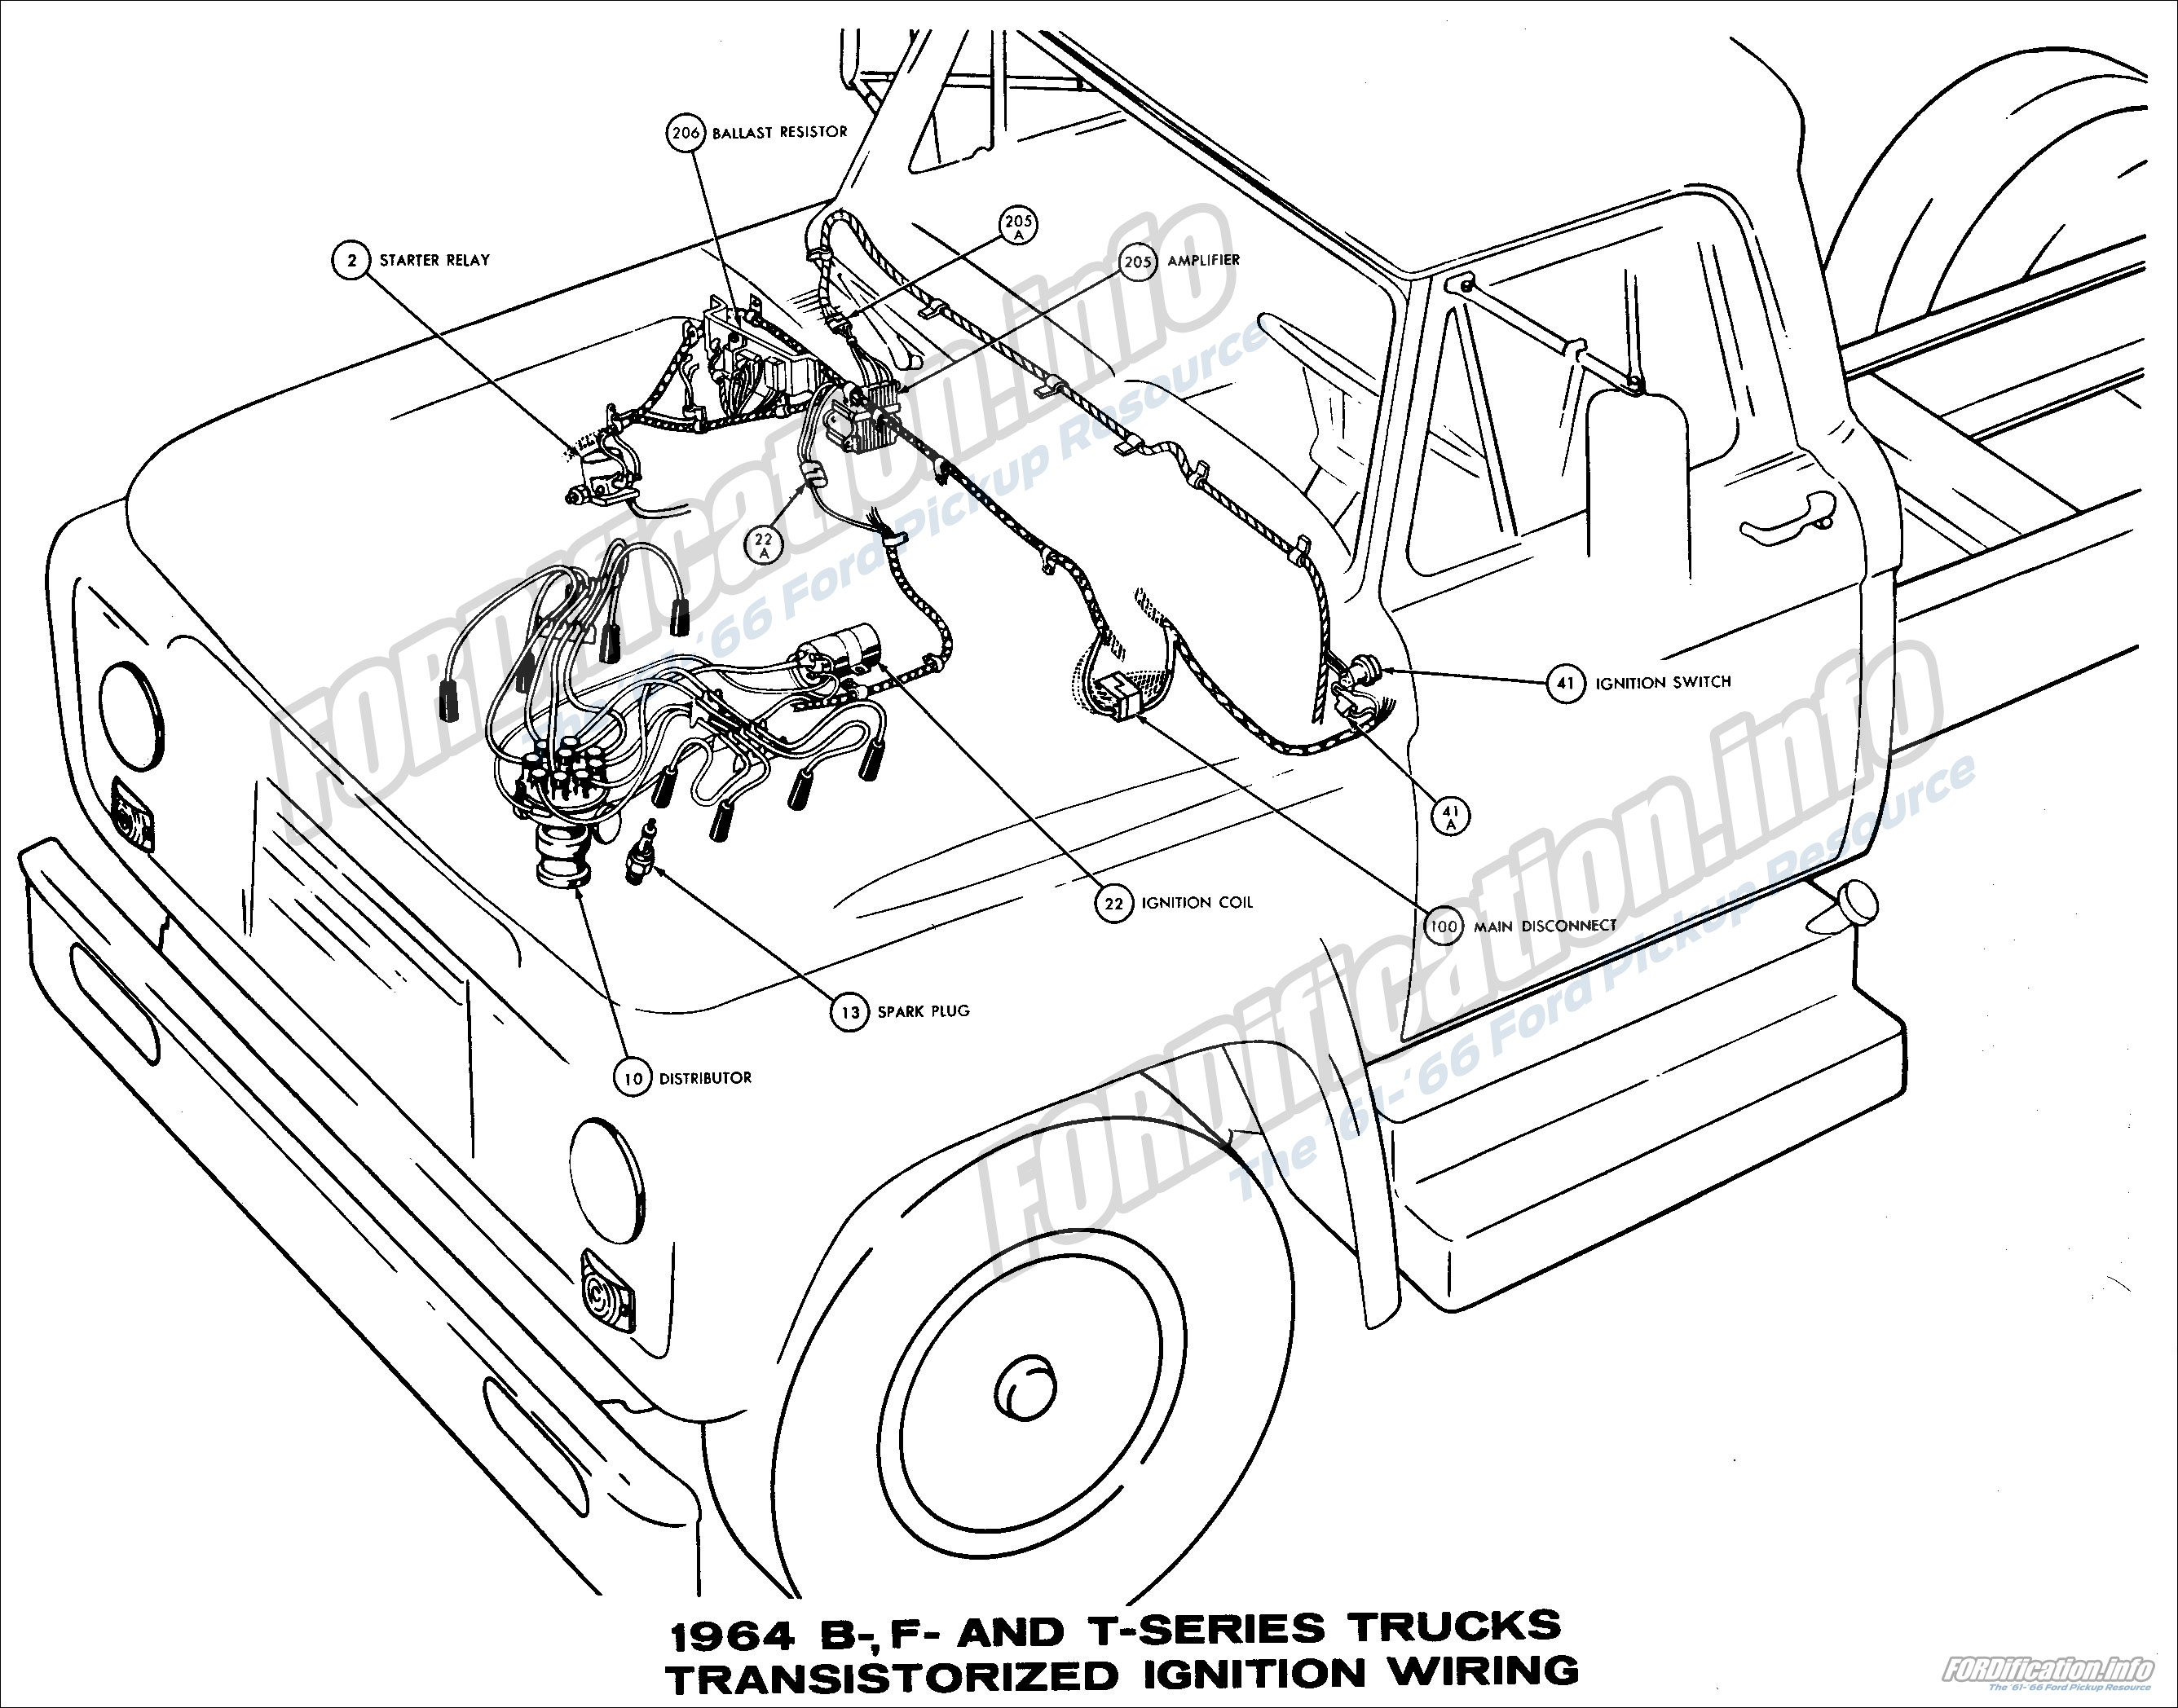 Ford Truck Drawing At Free For Personal Use Wiring Harness 49 F1 Download Diagram Schematic 2672x2096 1964 Diagrams